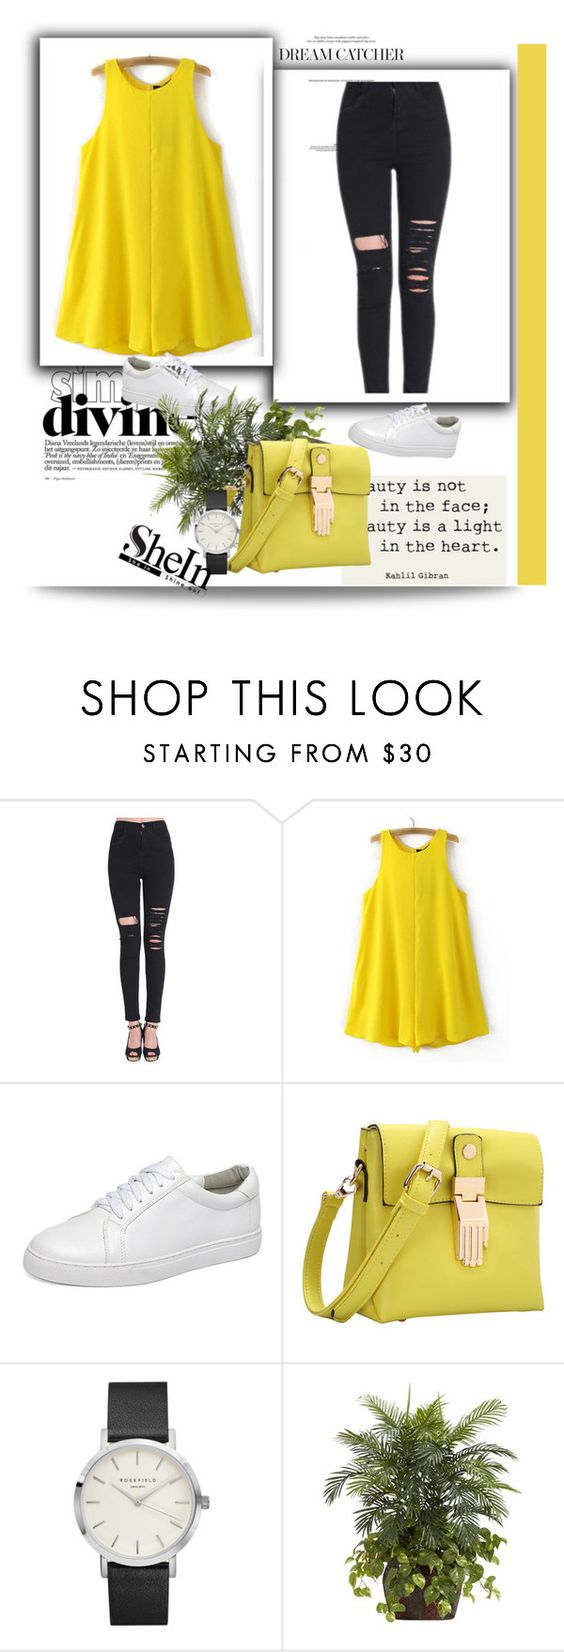 """""""Shein 8 / 10"""" by mell-2405 ❤ liked on Polyvore featuring Nearly Natural"""